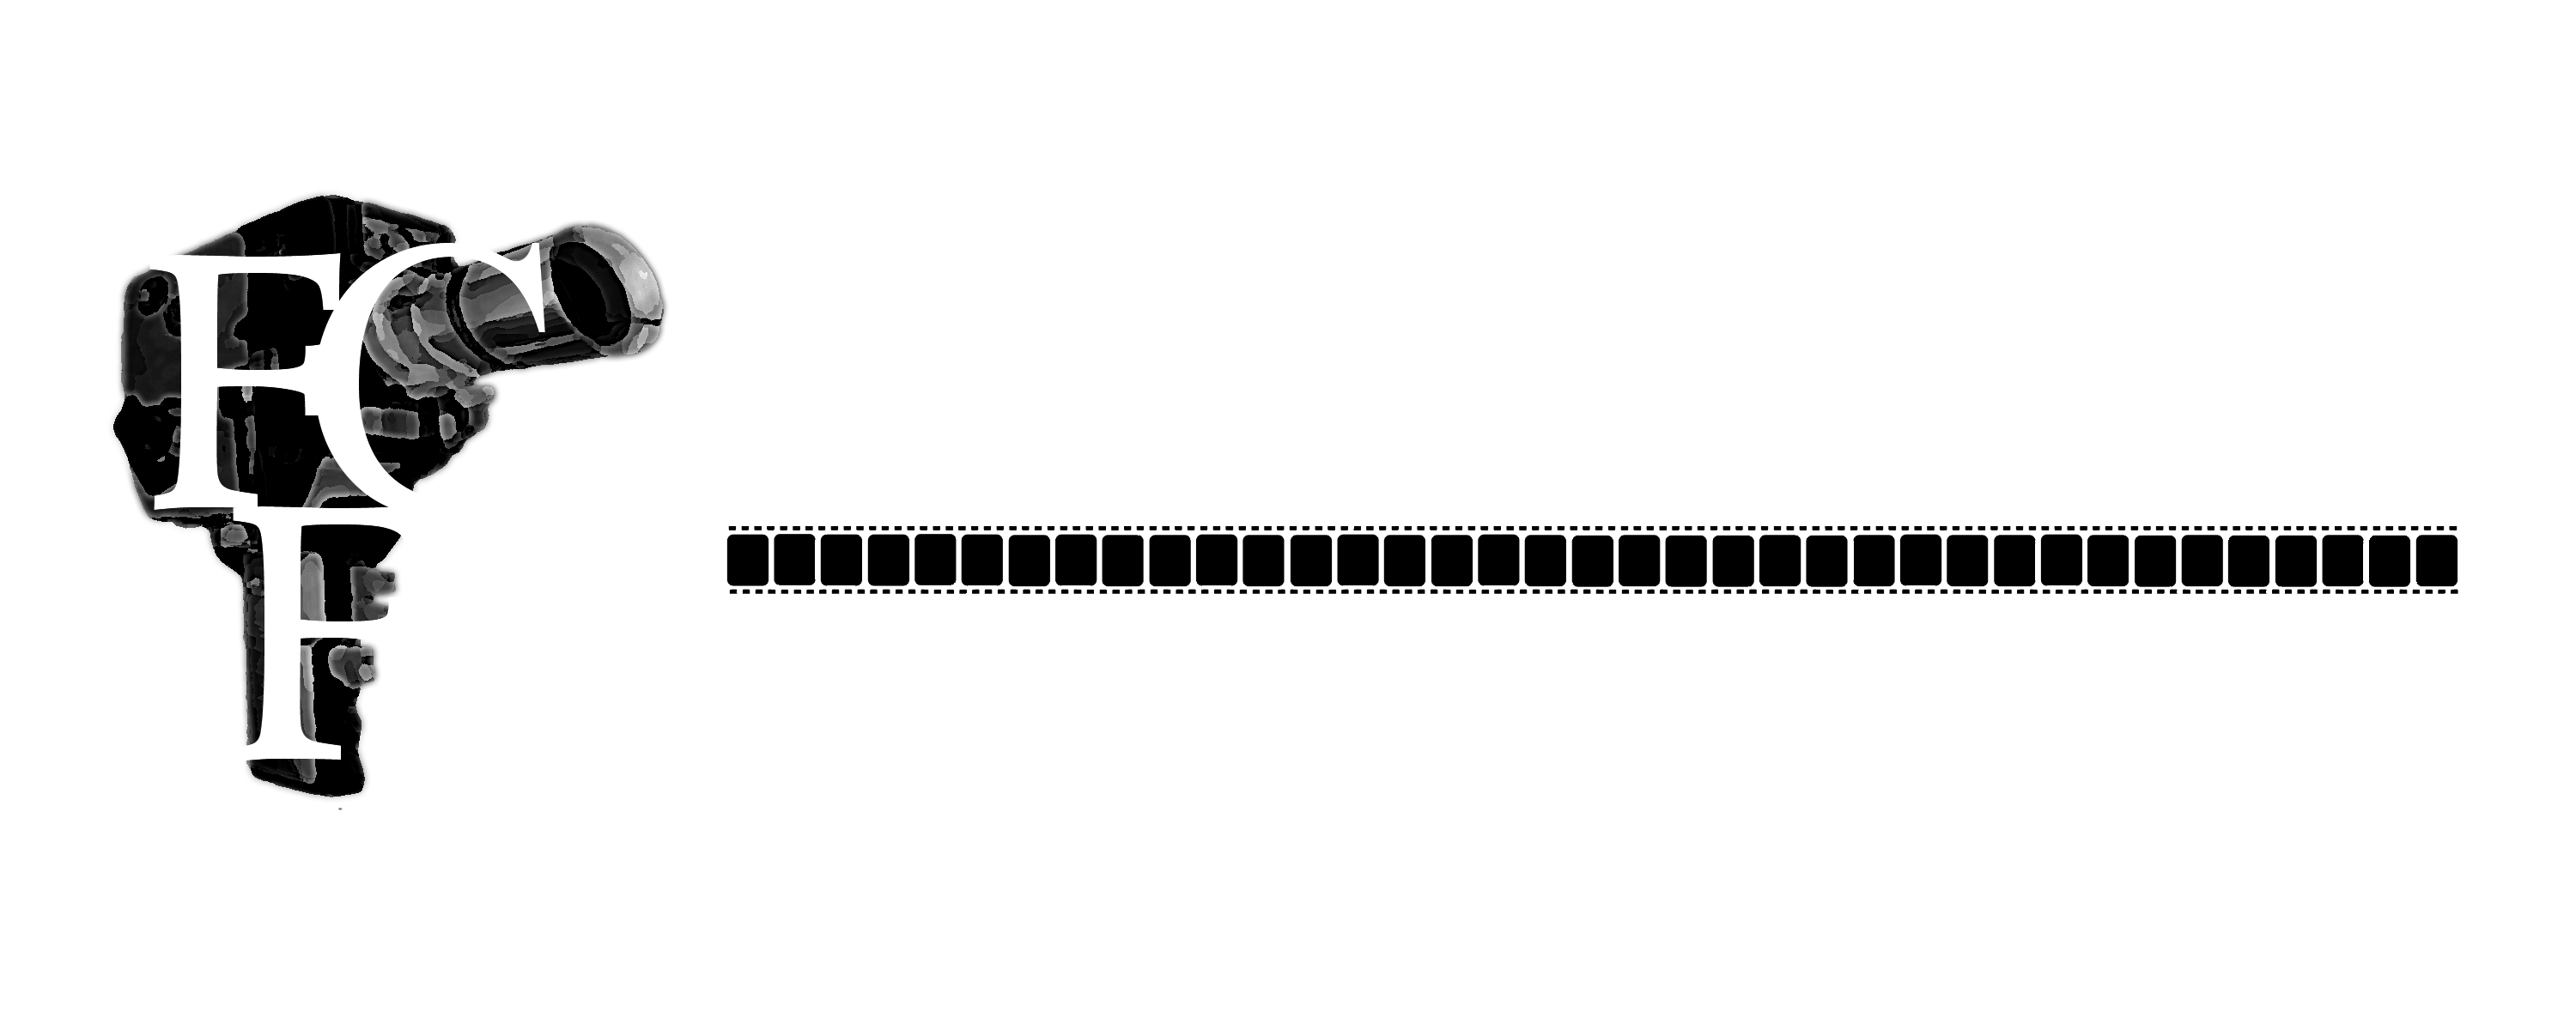 FILMCAMP FILMS a digital media production company